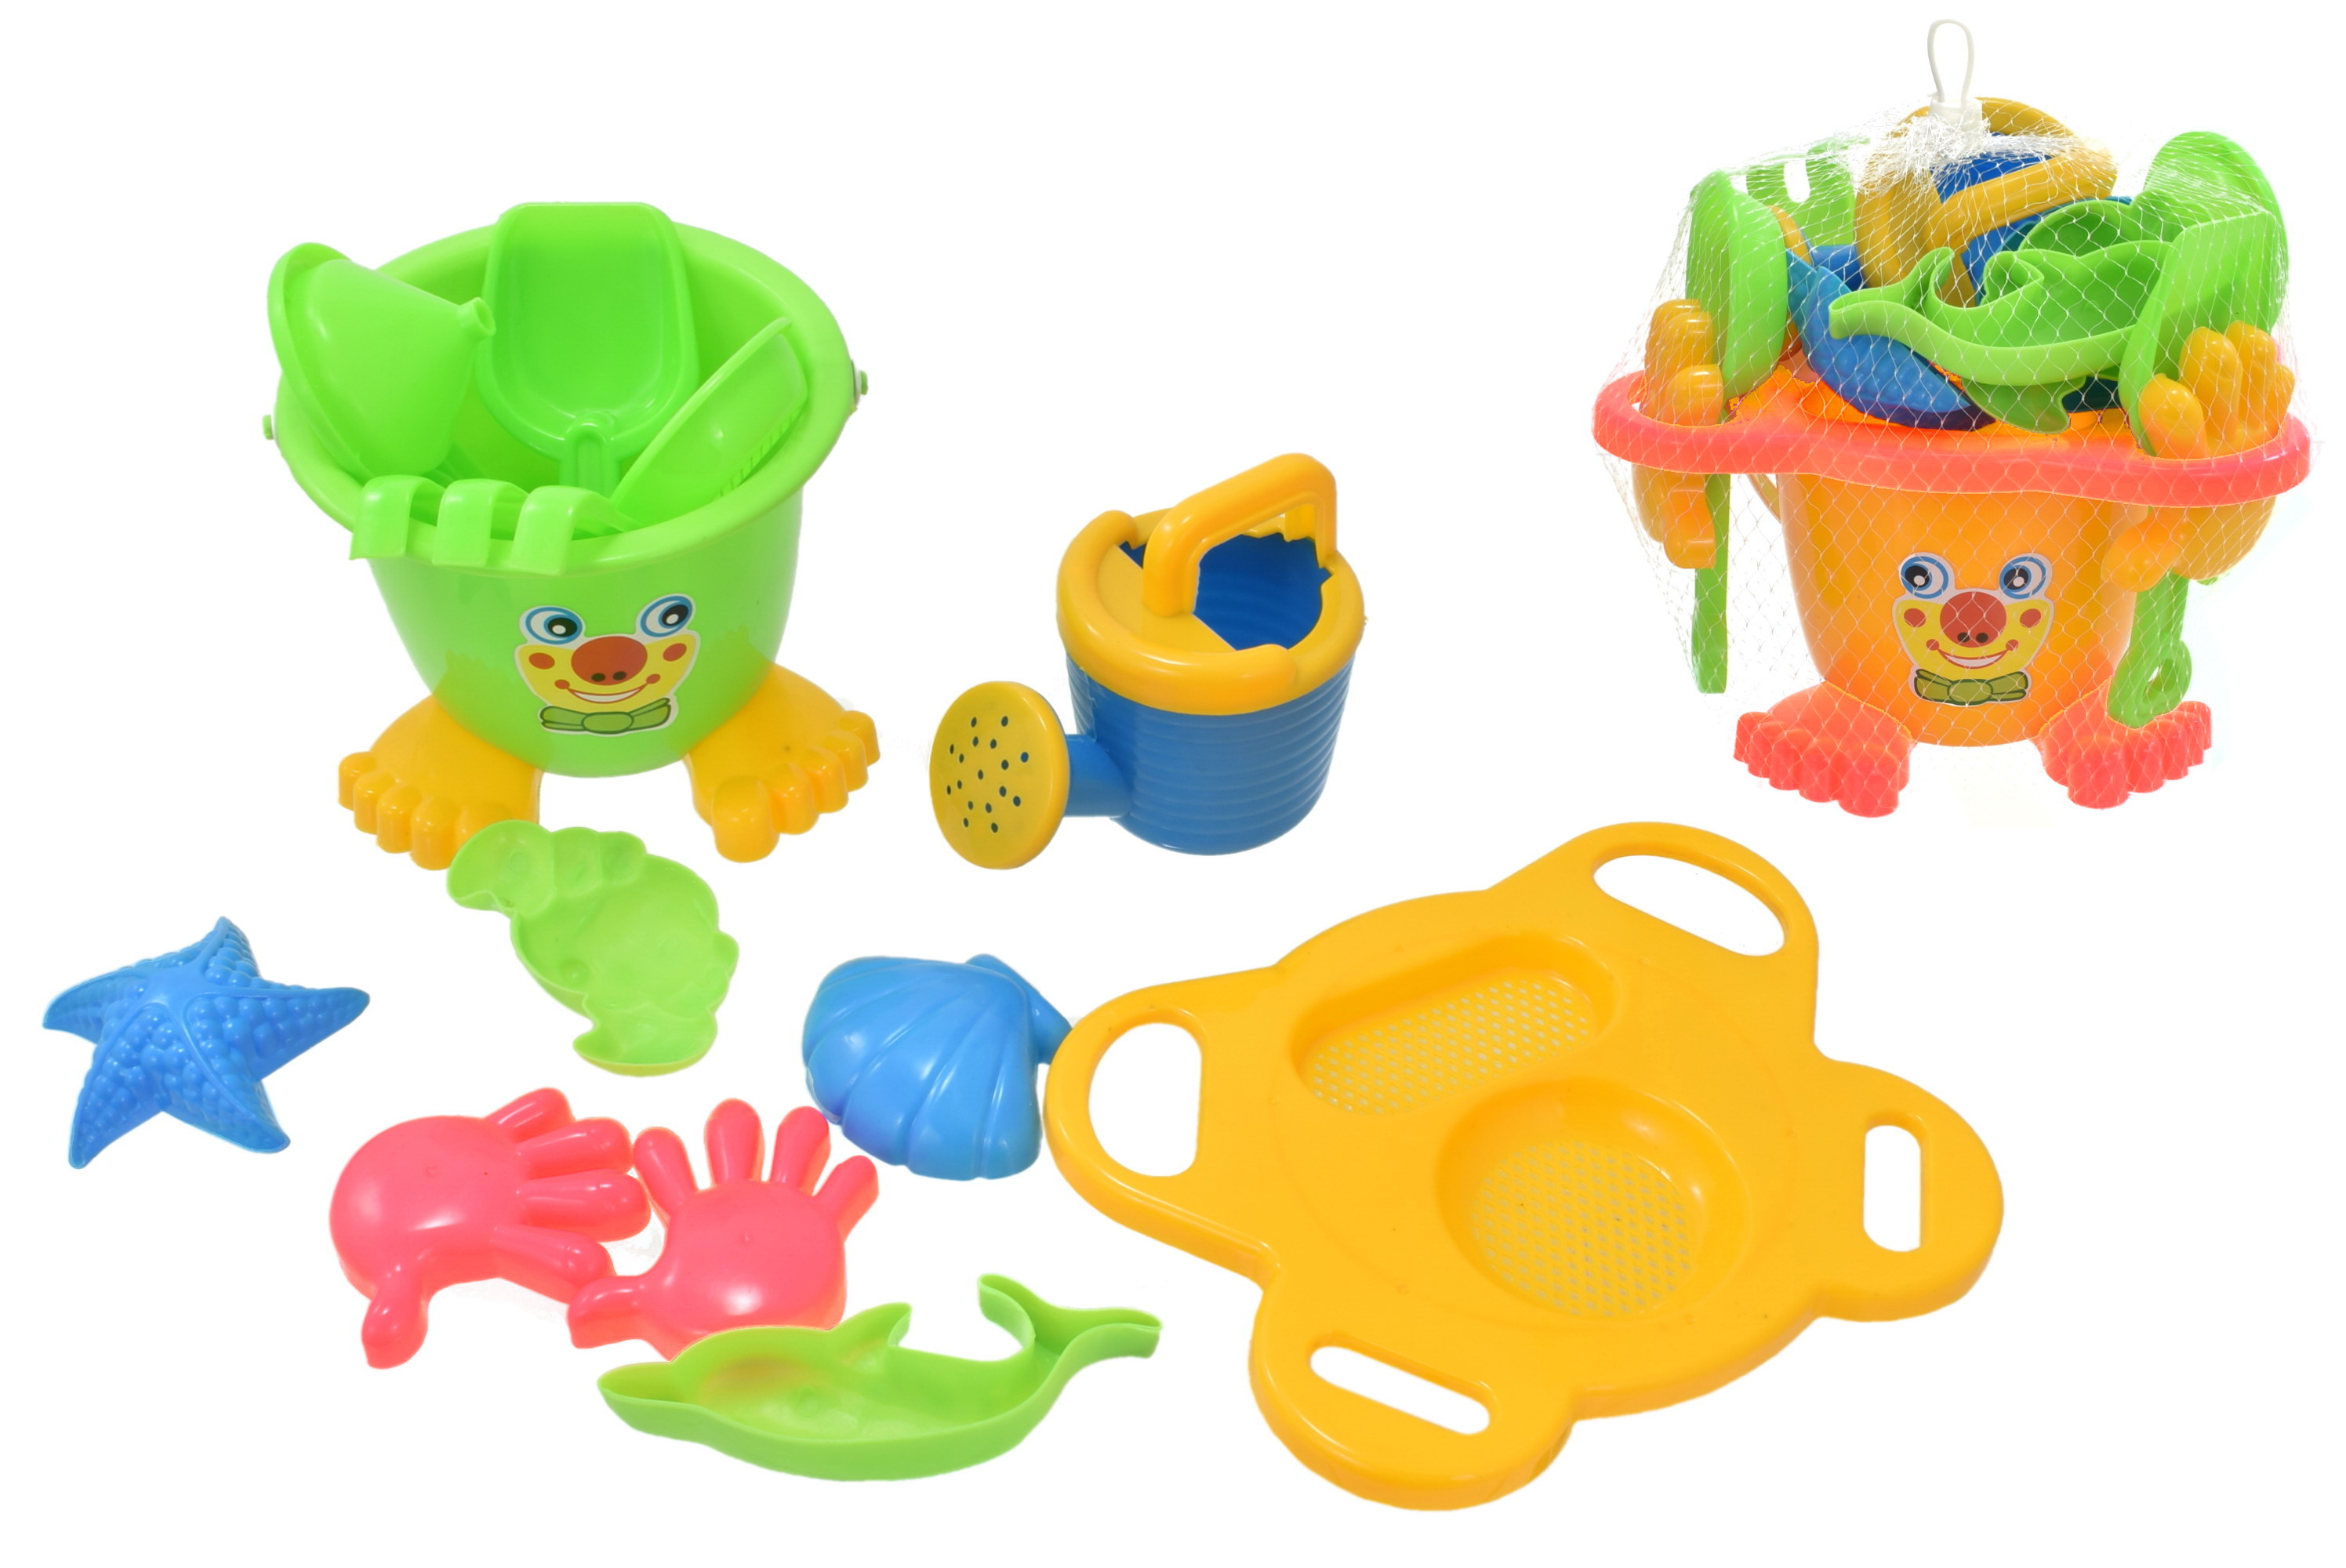 Smiley Face Bucket Set 15pc - Netted